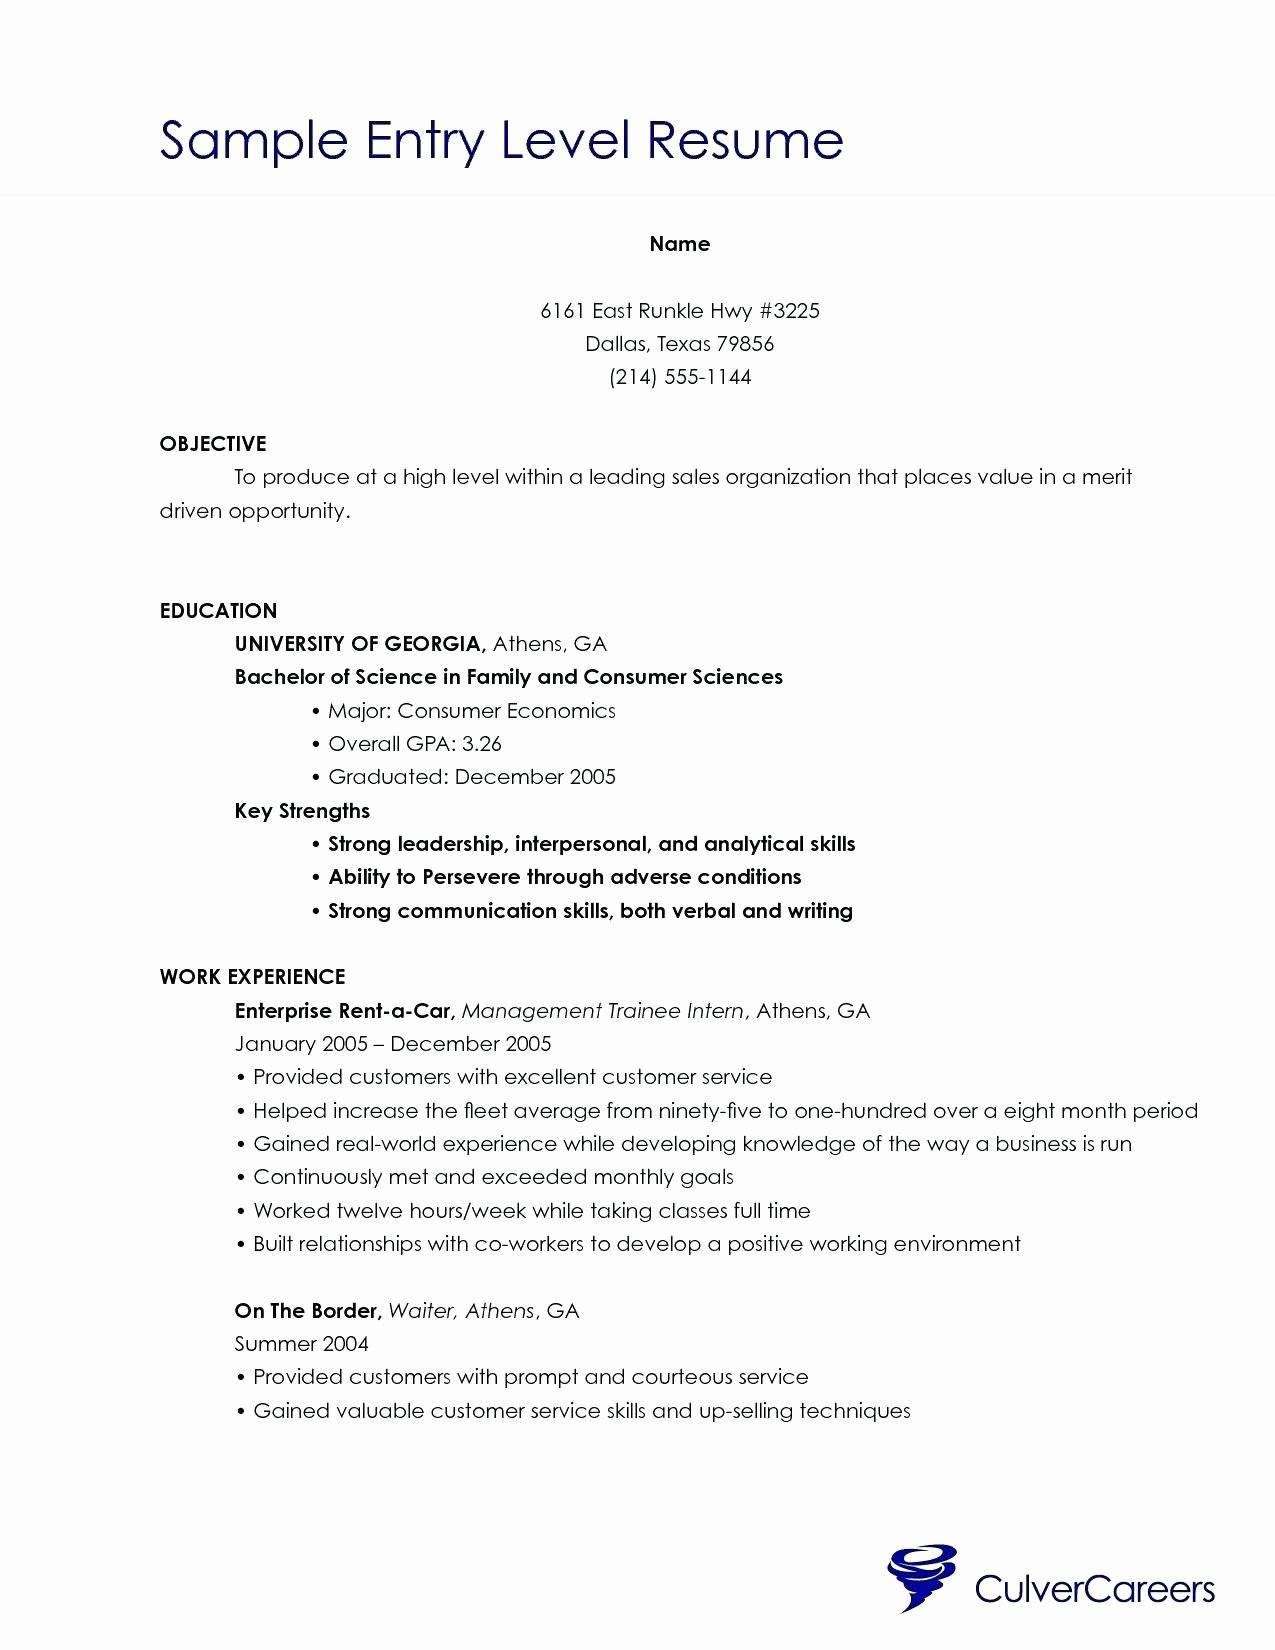 Resume Entry Level Resume